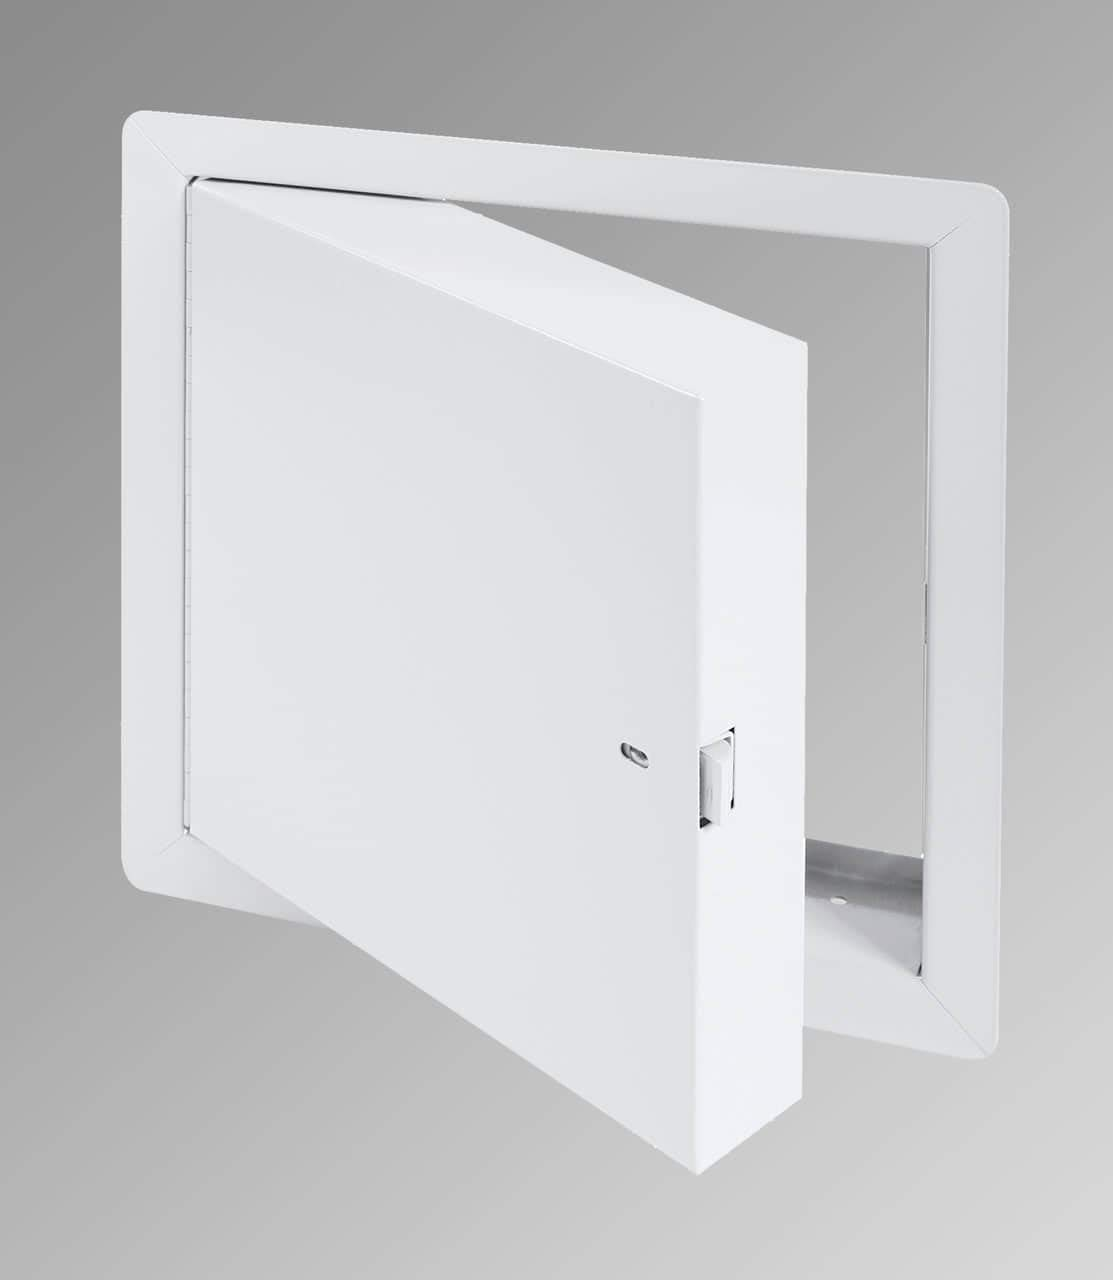 Best - 24'' x 24'' - Fire Rated Insulated Access Door with Flange